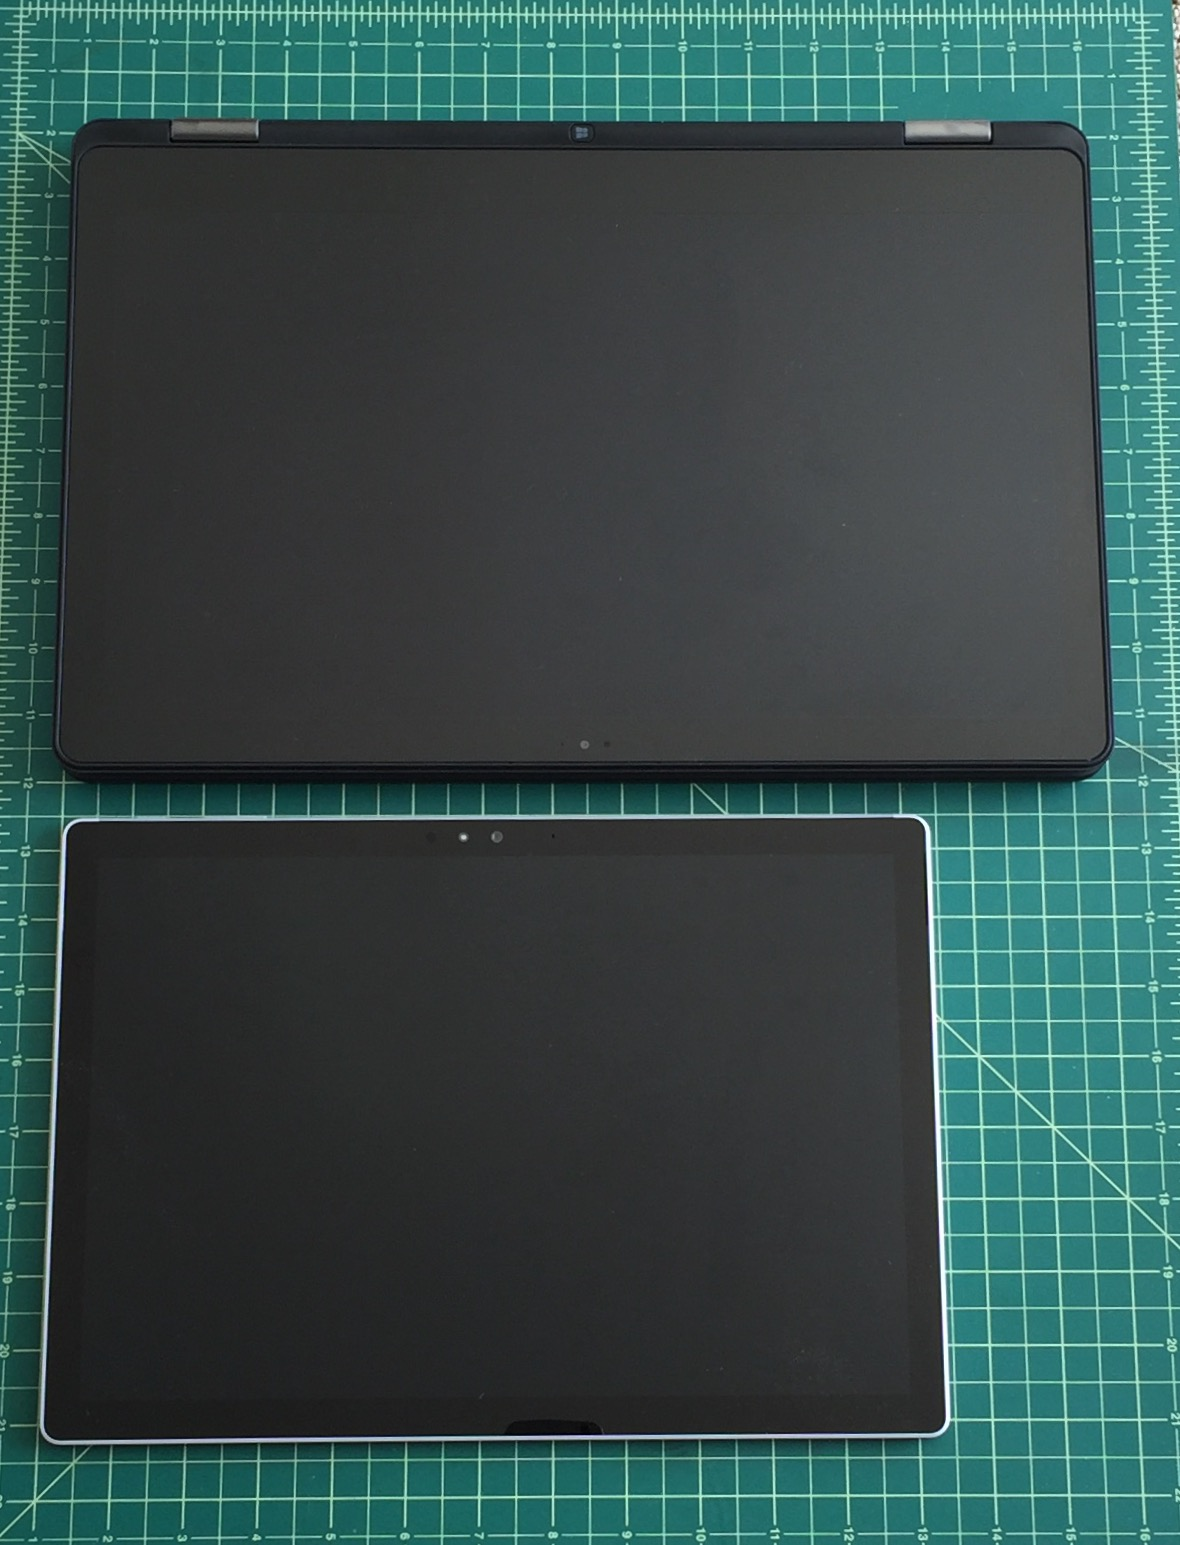 The Surface Book's 13.3 inch Clipboard (above, bottom) looks positively tiny by comparison.